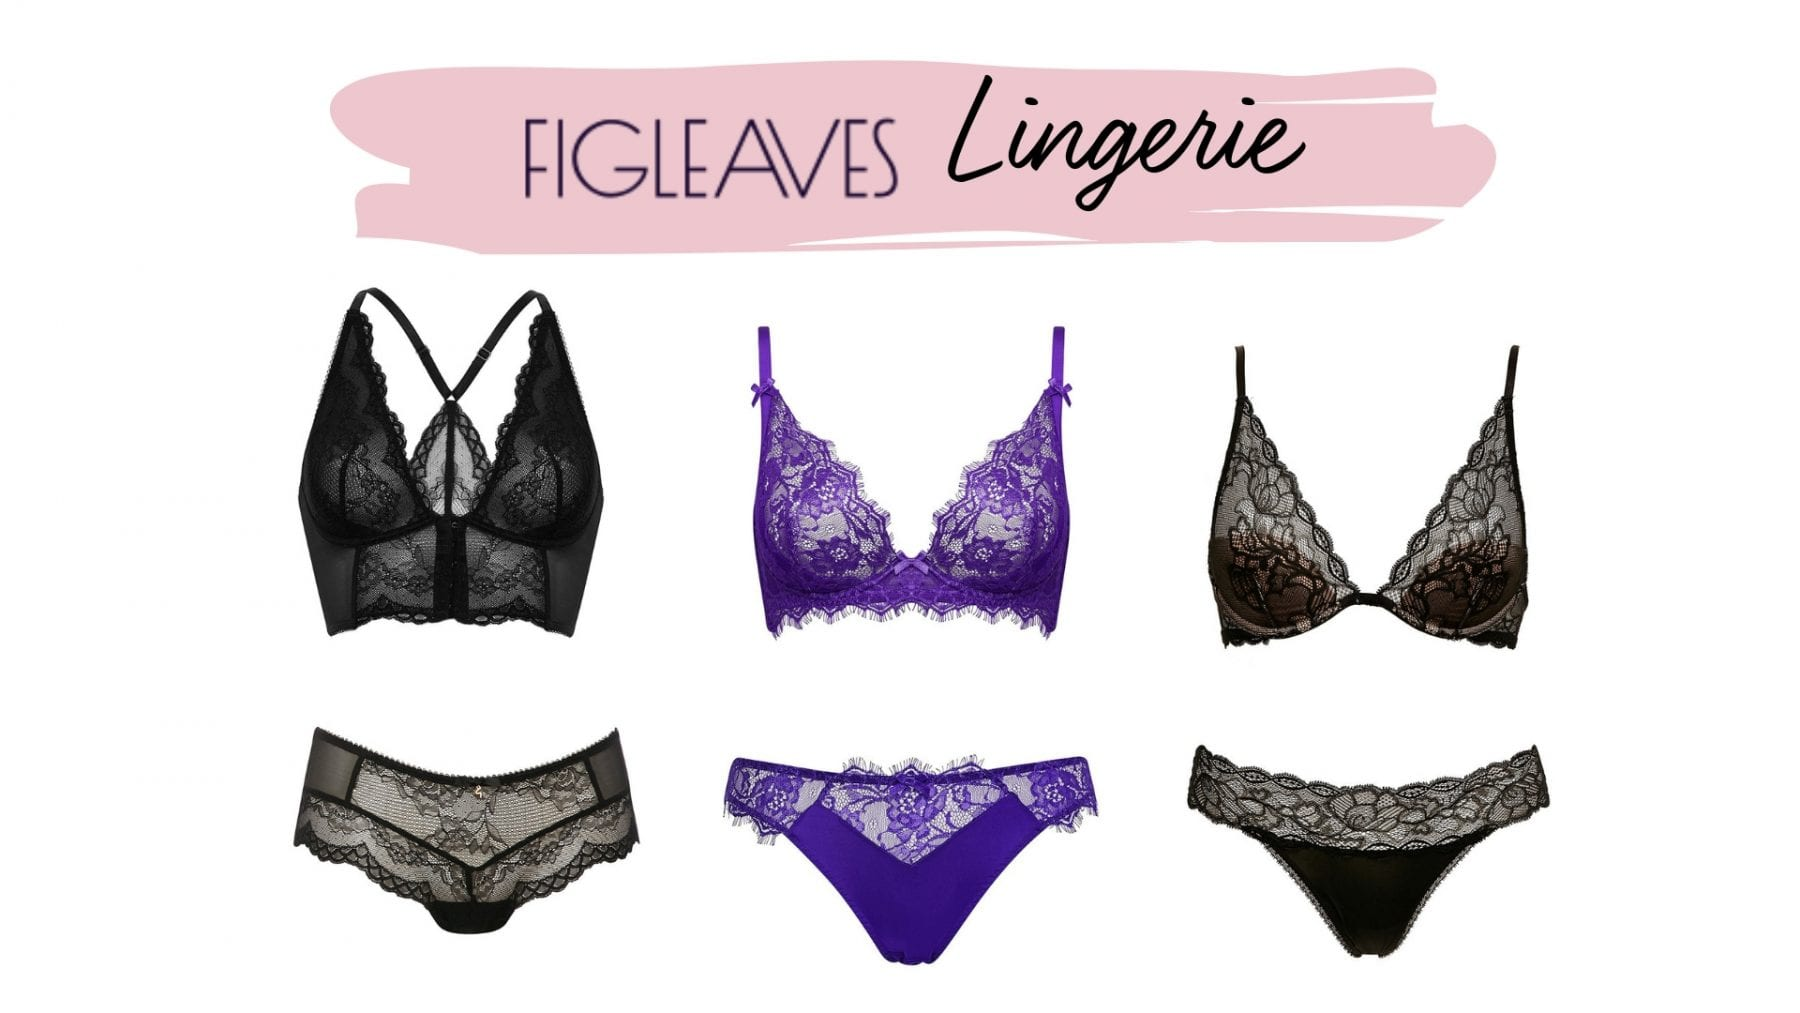 Figleaves – The Comfiest And Sexiest Lingerie Around